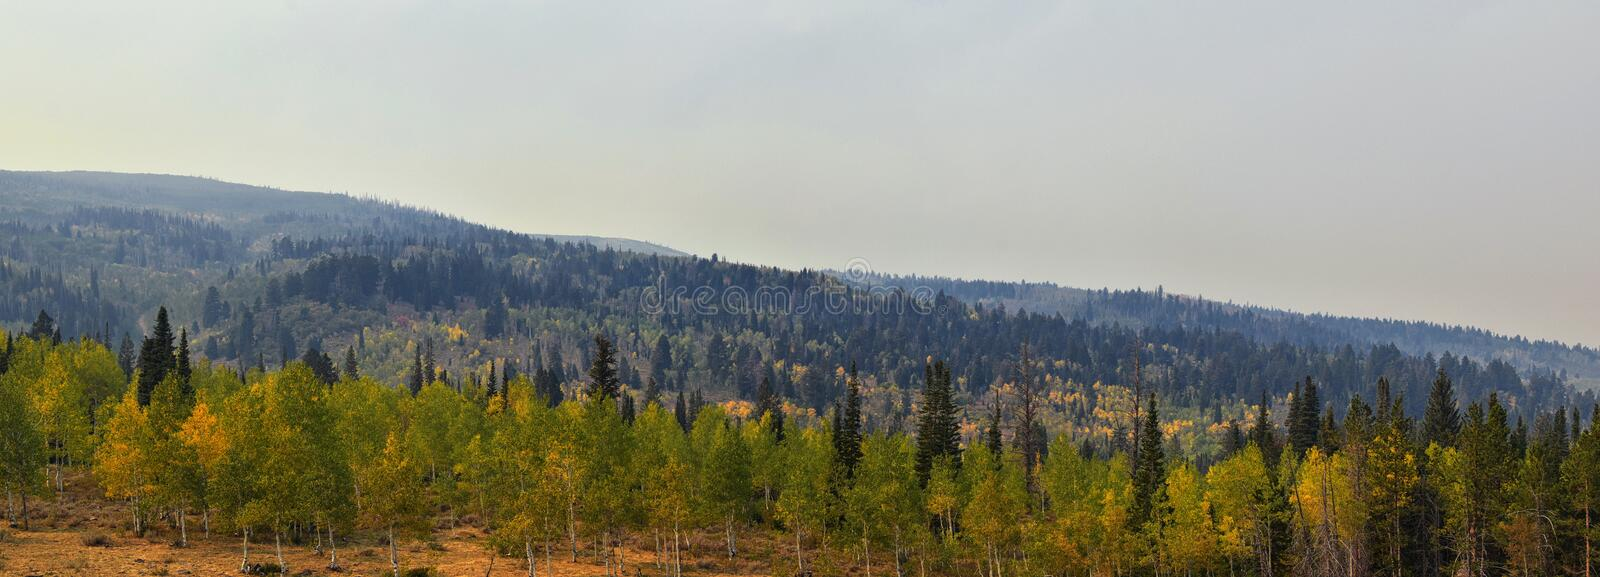 Late Summer early Fall panorama forest views hiking, biking, horseback trails through trees along Highway 40 near Daniels Summit b. Etween Heber and Duchesne in royalty free stock photo